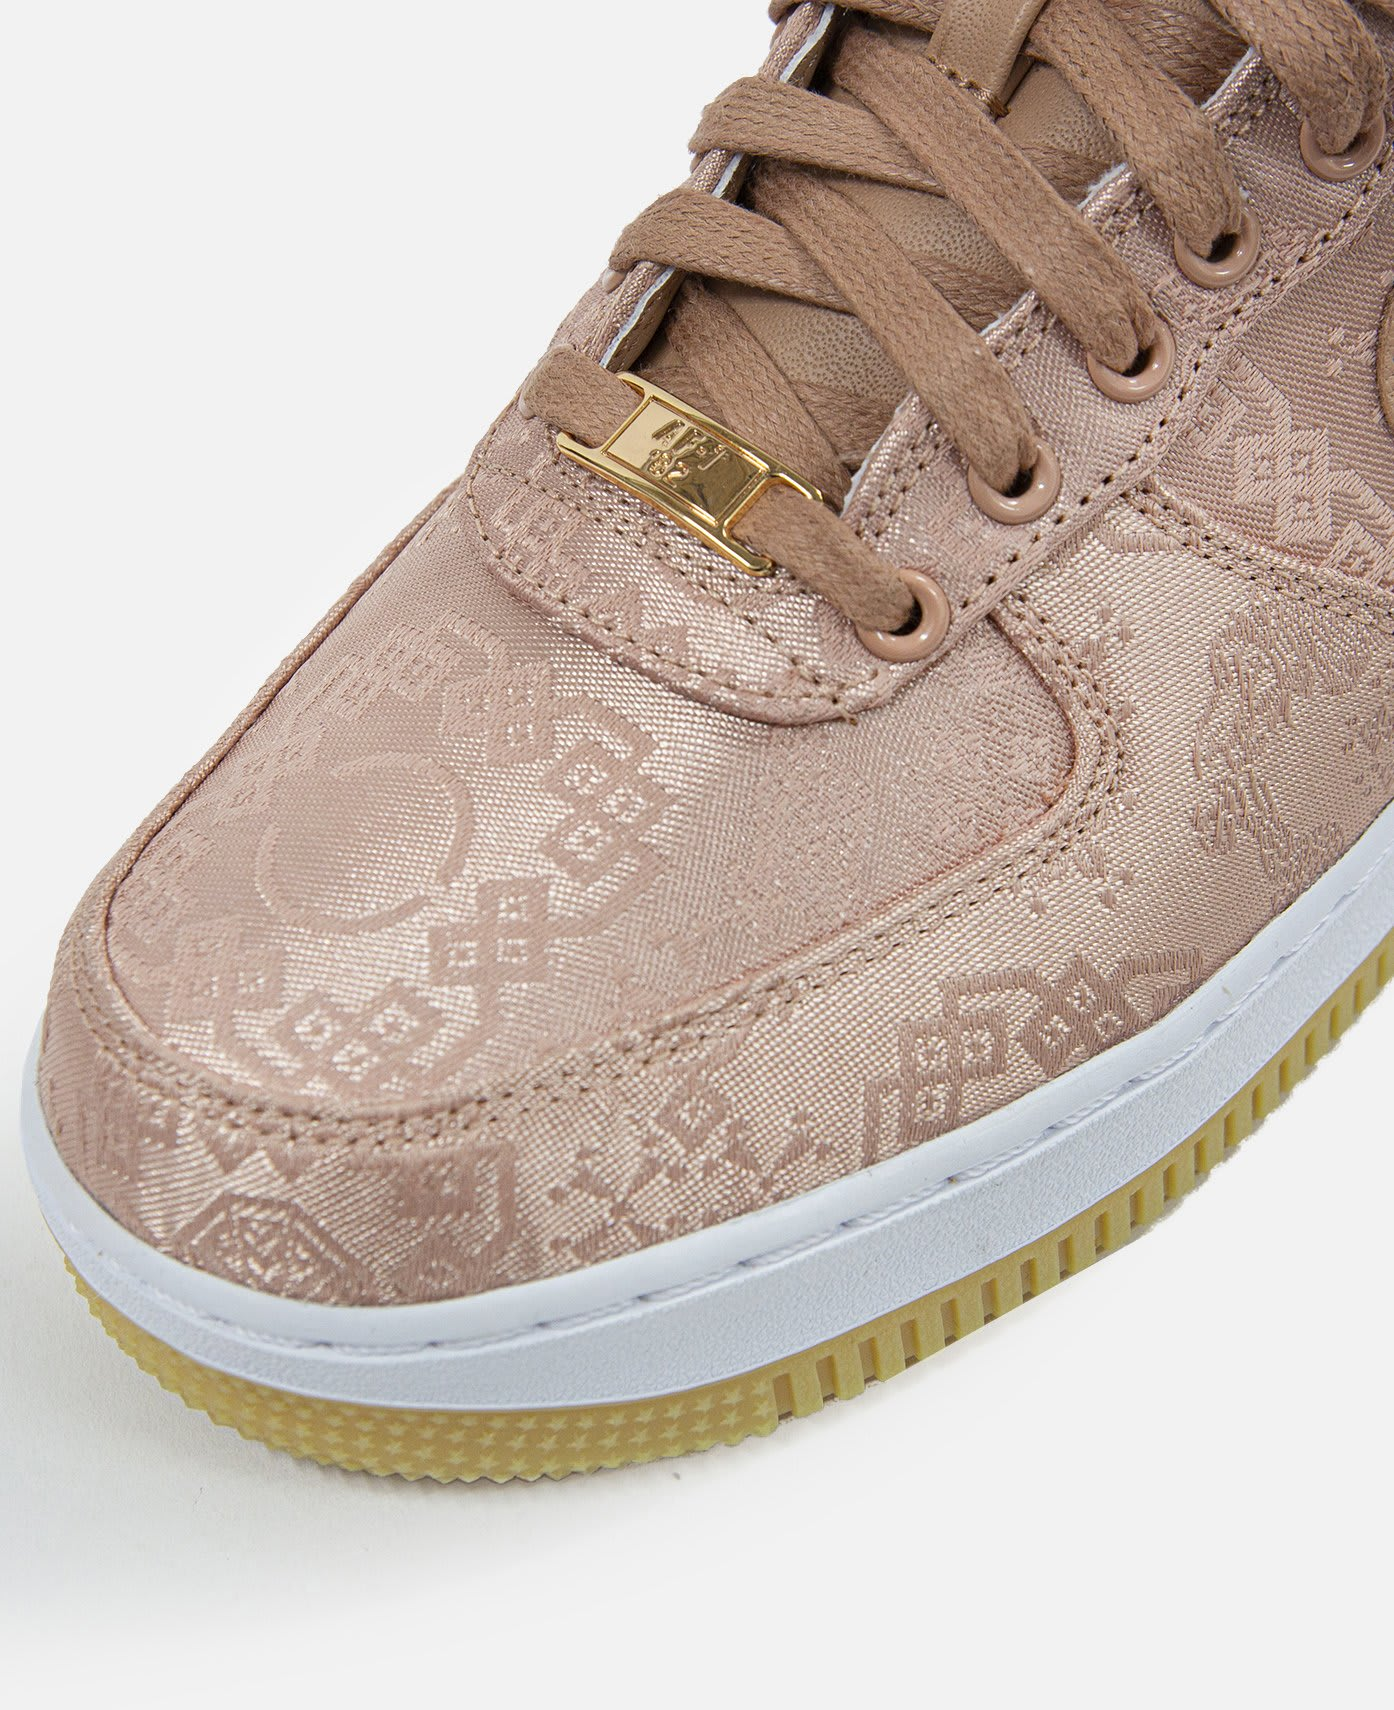 clot-nike-air-force-1-low-rose-gold-toe